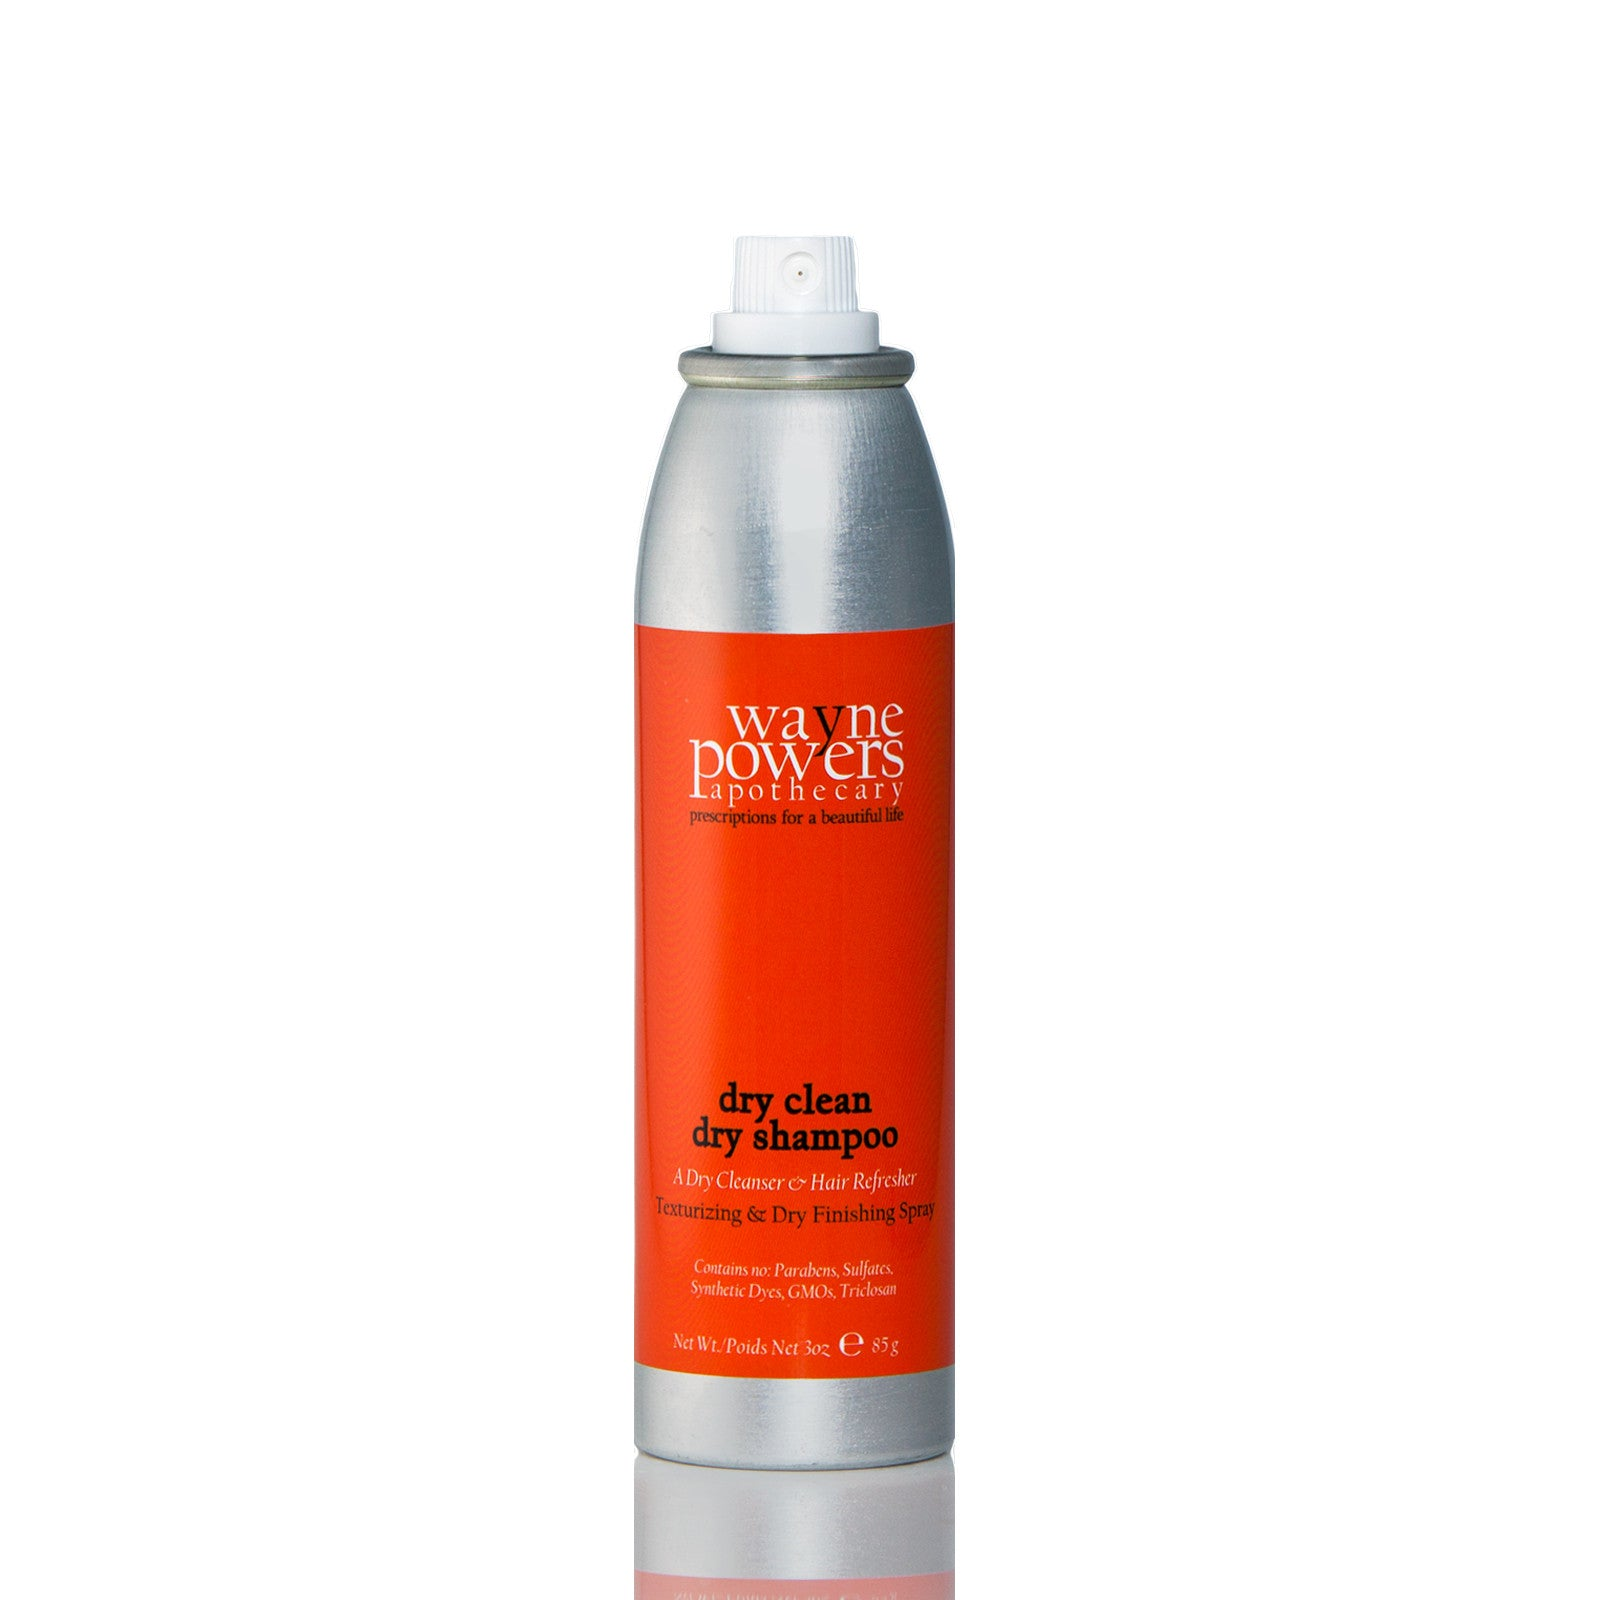 Dry Clean Volumizing Dry Shampoo by Wayne Powers Apothecary